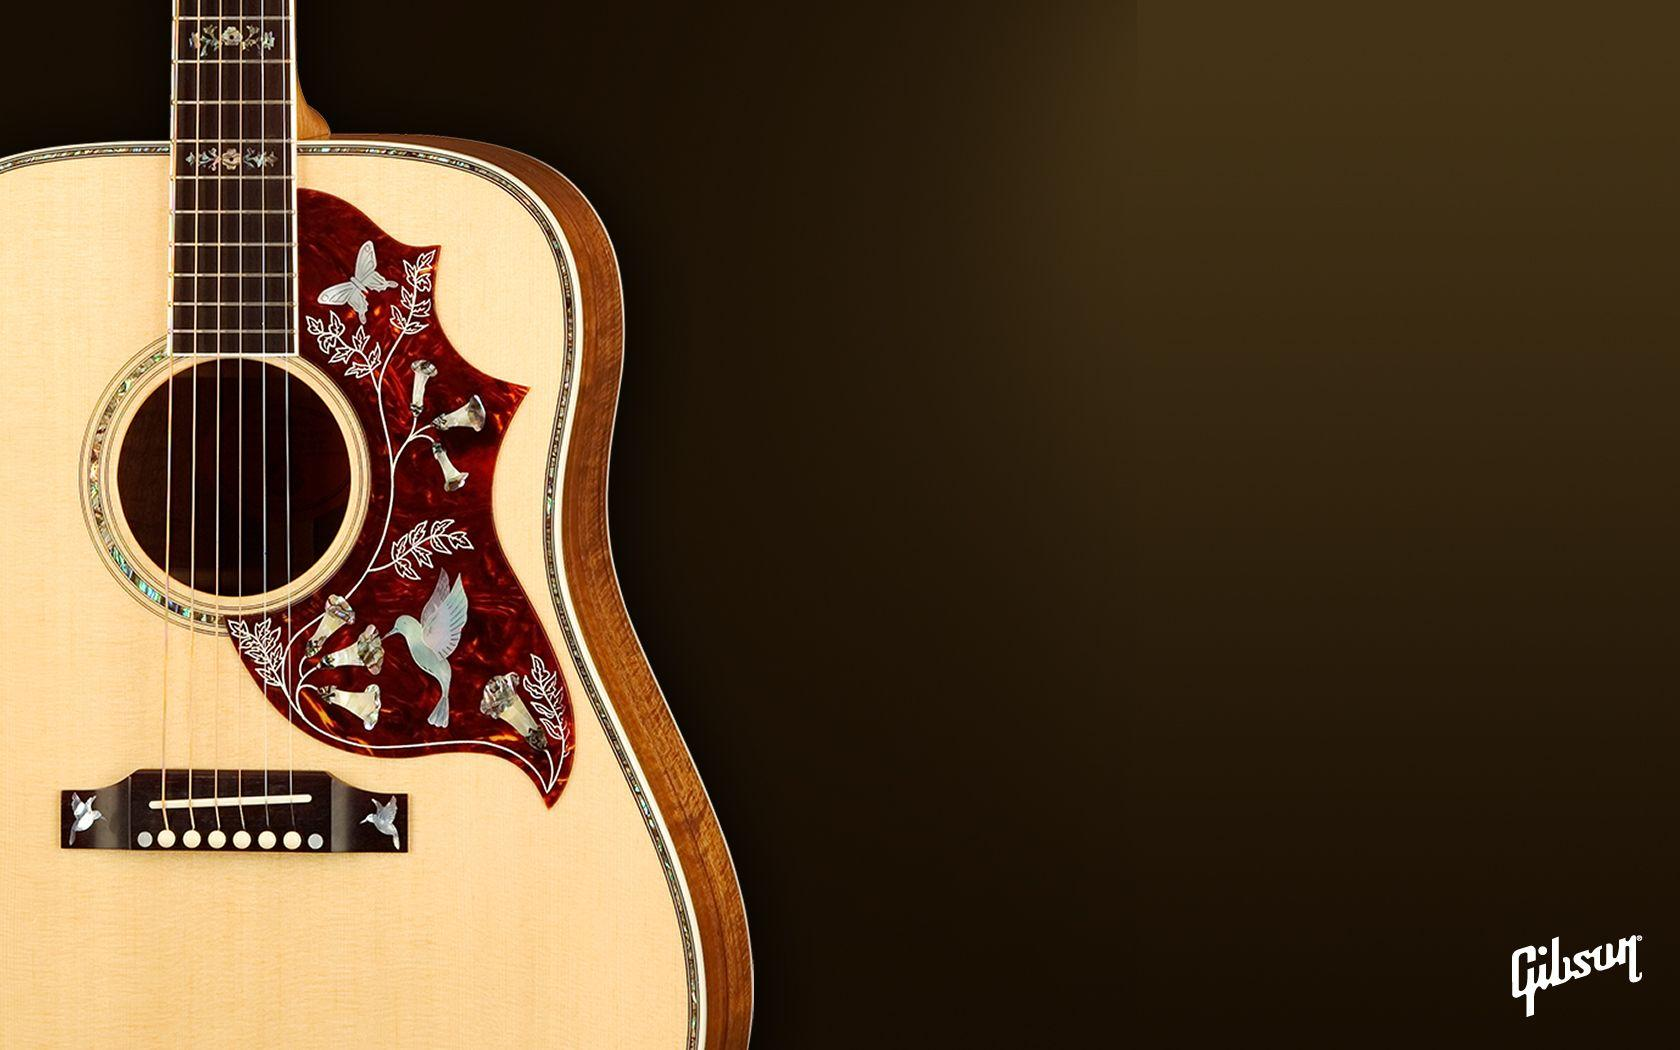 Gibson Acoustic Guitar Wallpapers Wallpaper Cave